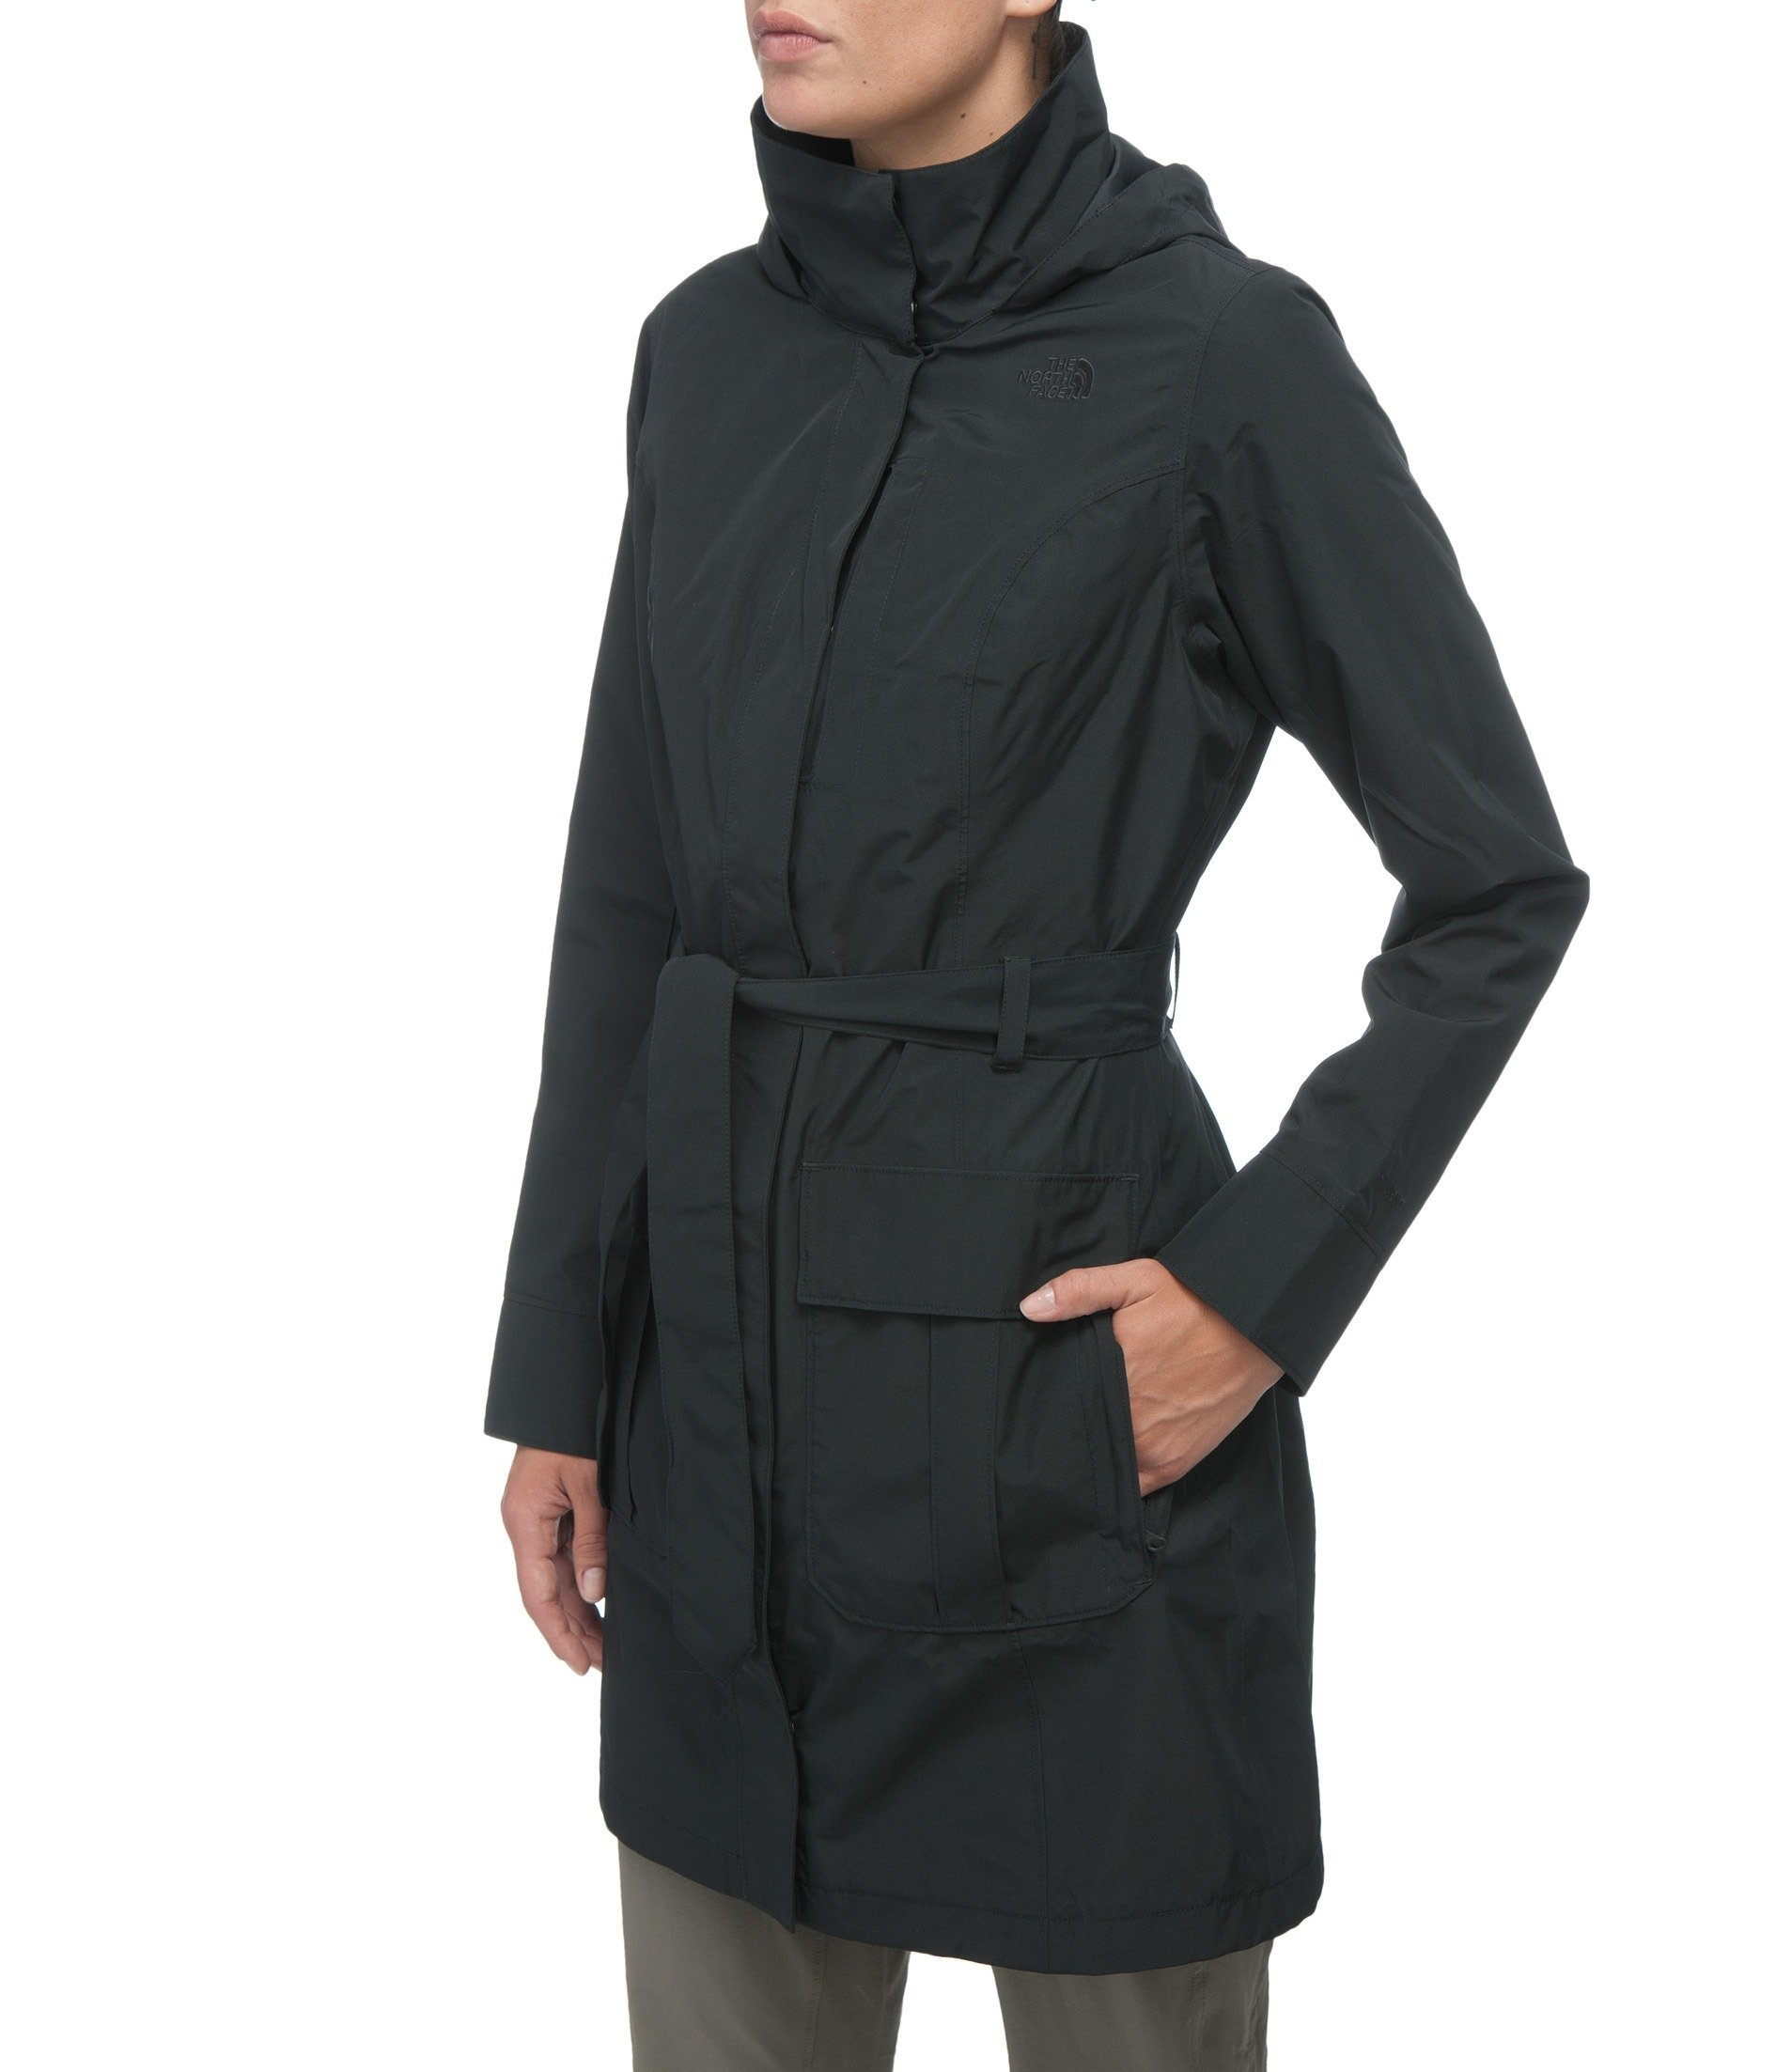 The north face North face stella grace jacket woman fra billigsport24